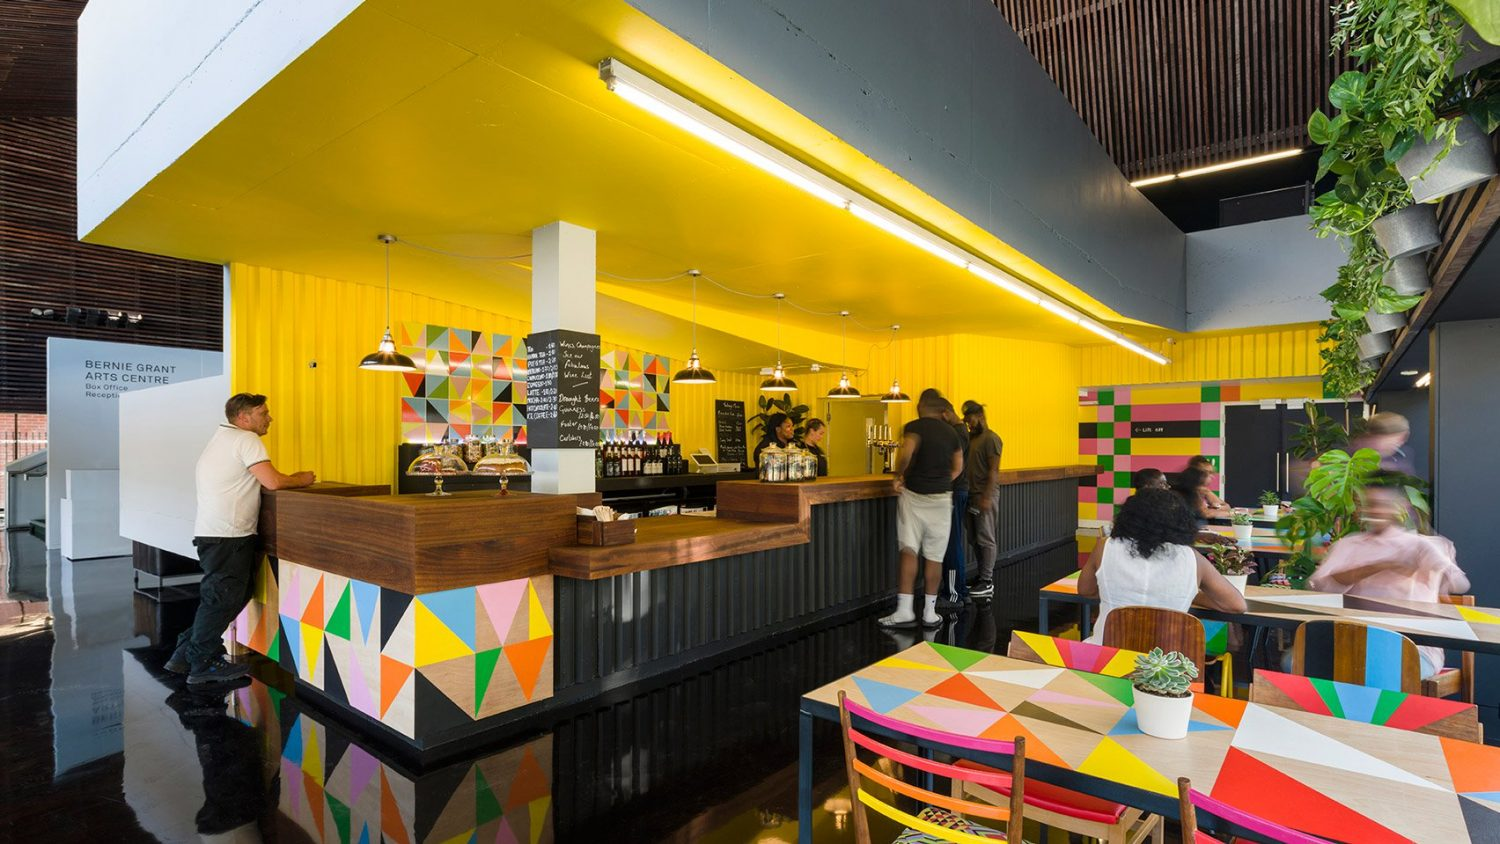 morag myerscough Morag Myerscough designs Colorful Cafe in Bernie Grants Arts Centre Morag Myerscough designs Colorful Cafe in Bernie Grants Arts Centre